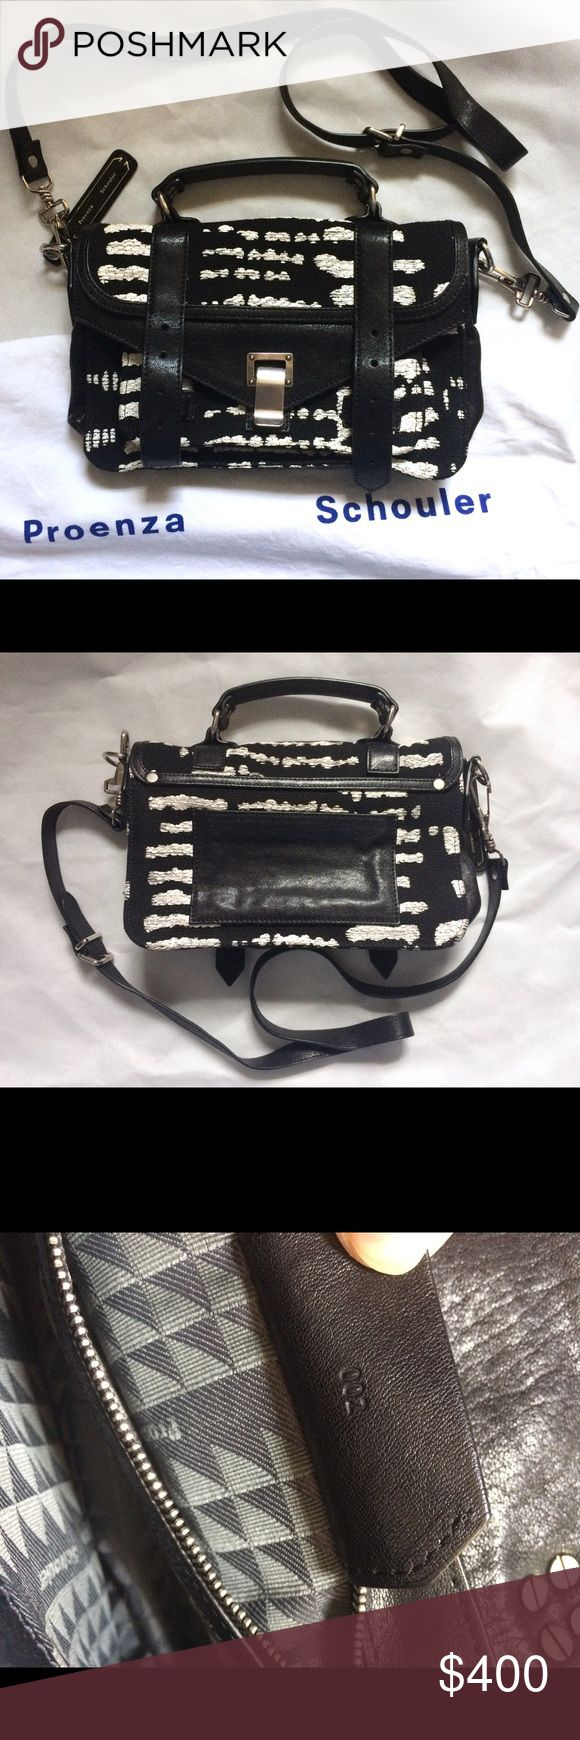 Proenza Schouler ps1 tiny black and white handbag preowned proenza schouler ps1 tiny in woodblock jaquard, black and white lambskin leather, silver tone hardware, in great condition, some dark spots on the white parts of the bag, some hairline scratches on the hardware, come with dust bag, shoulder strap is detachable. Price firm. Proenza Schouler Bags Satchels